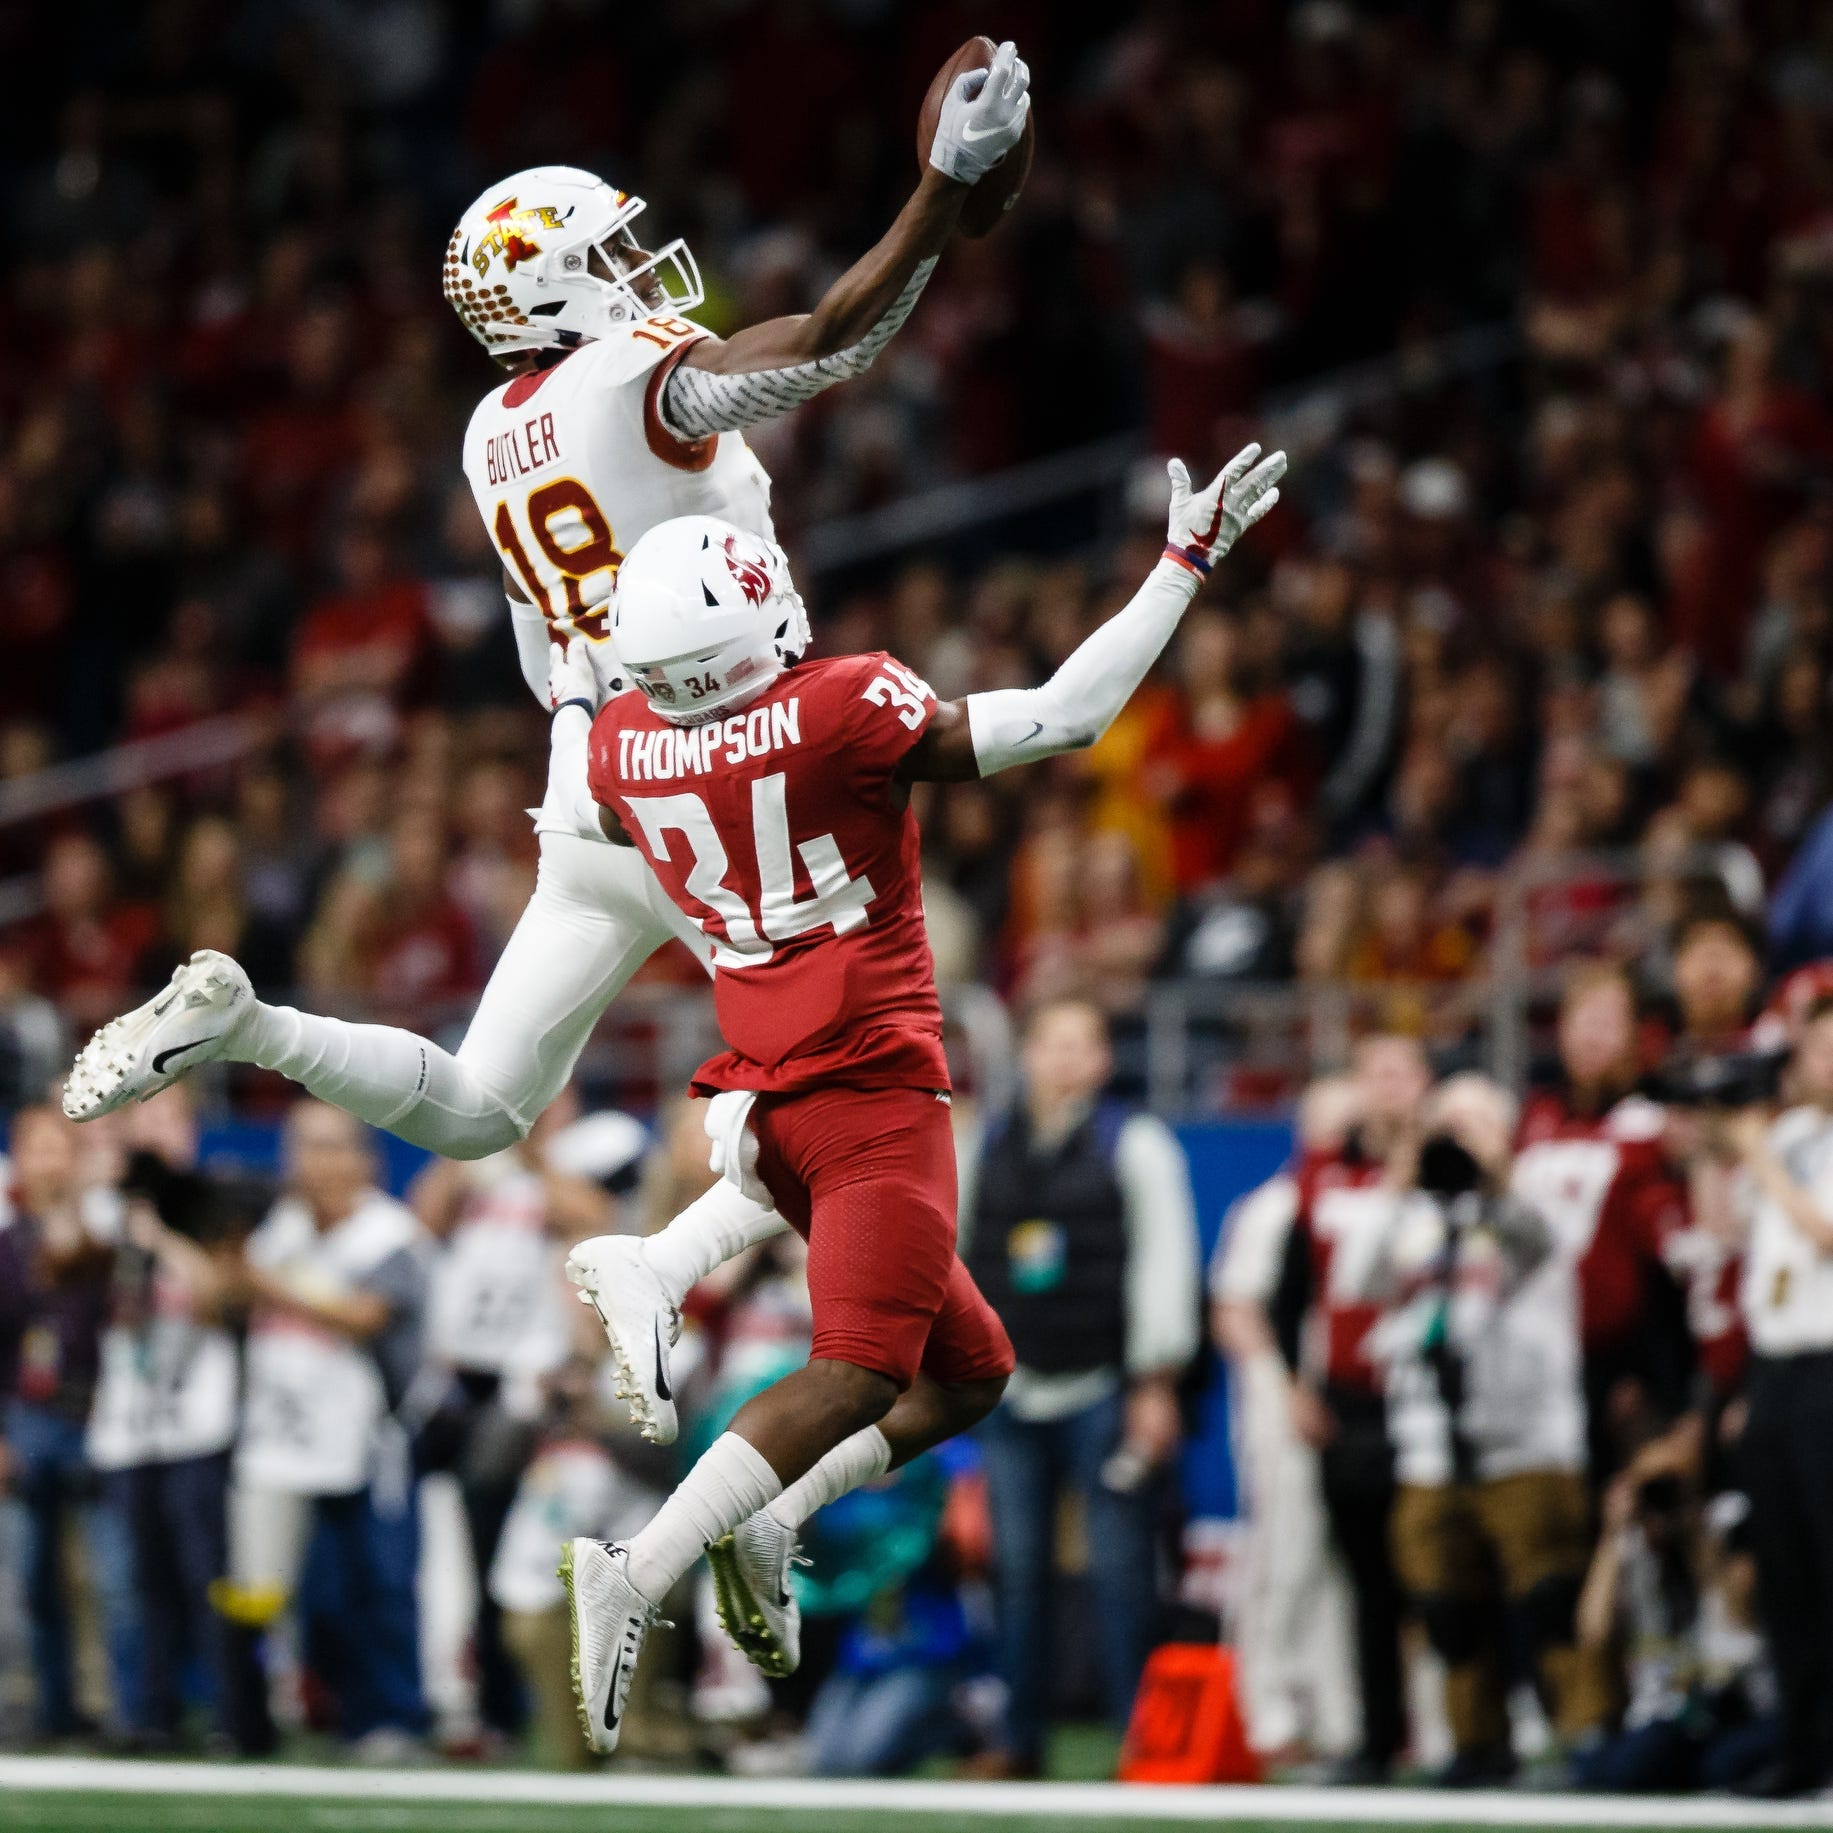 Peterson: After three decades, an Iowa State receiver will hear his name called during the NFL Draft